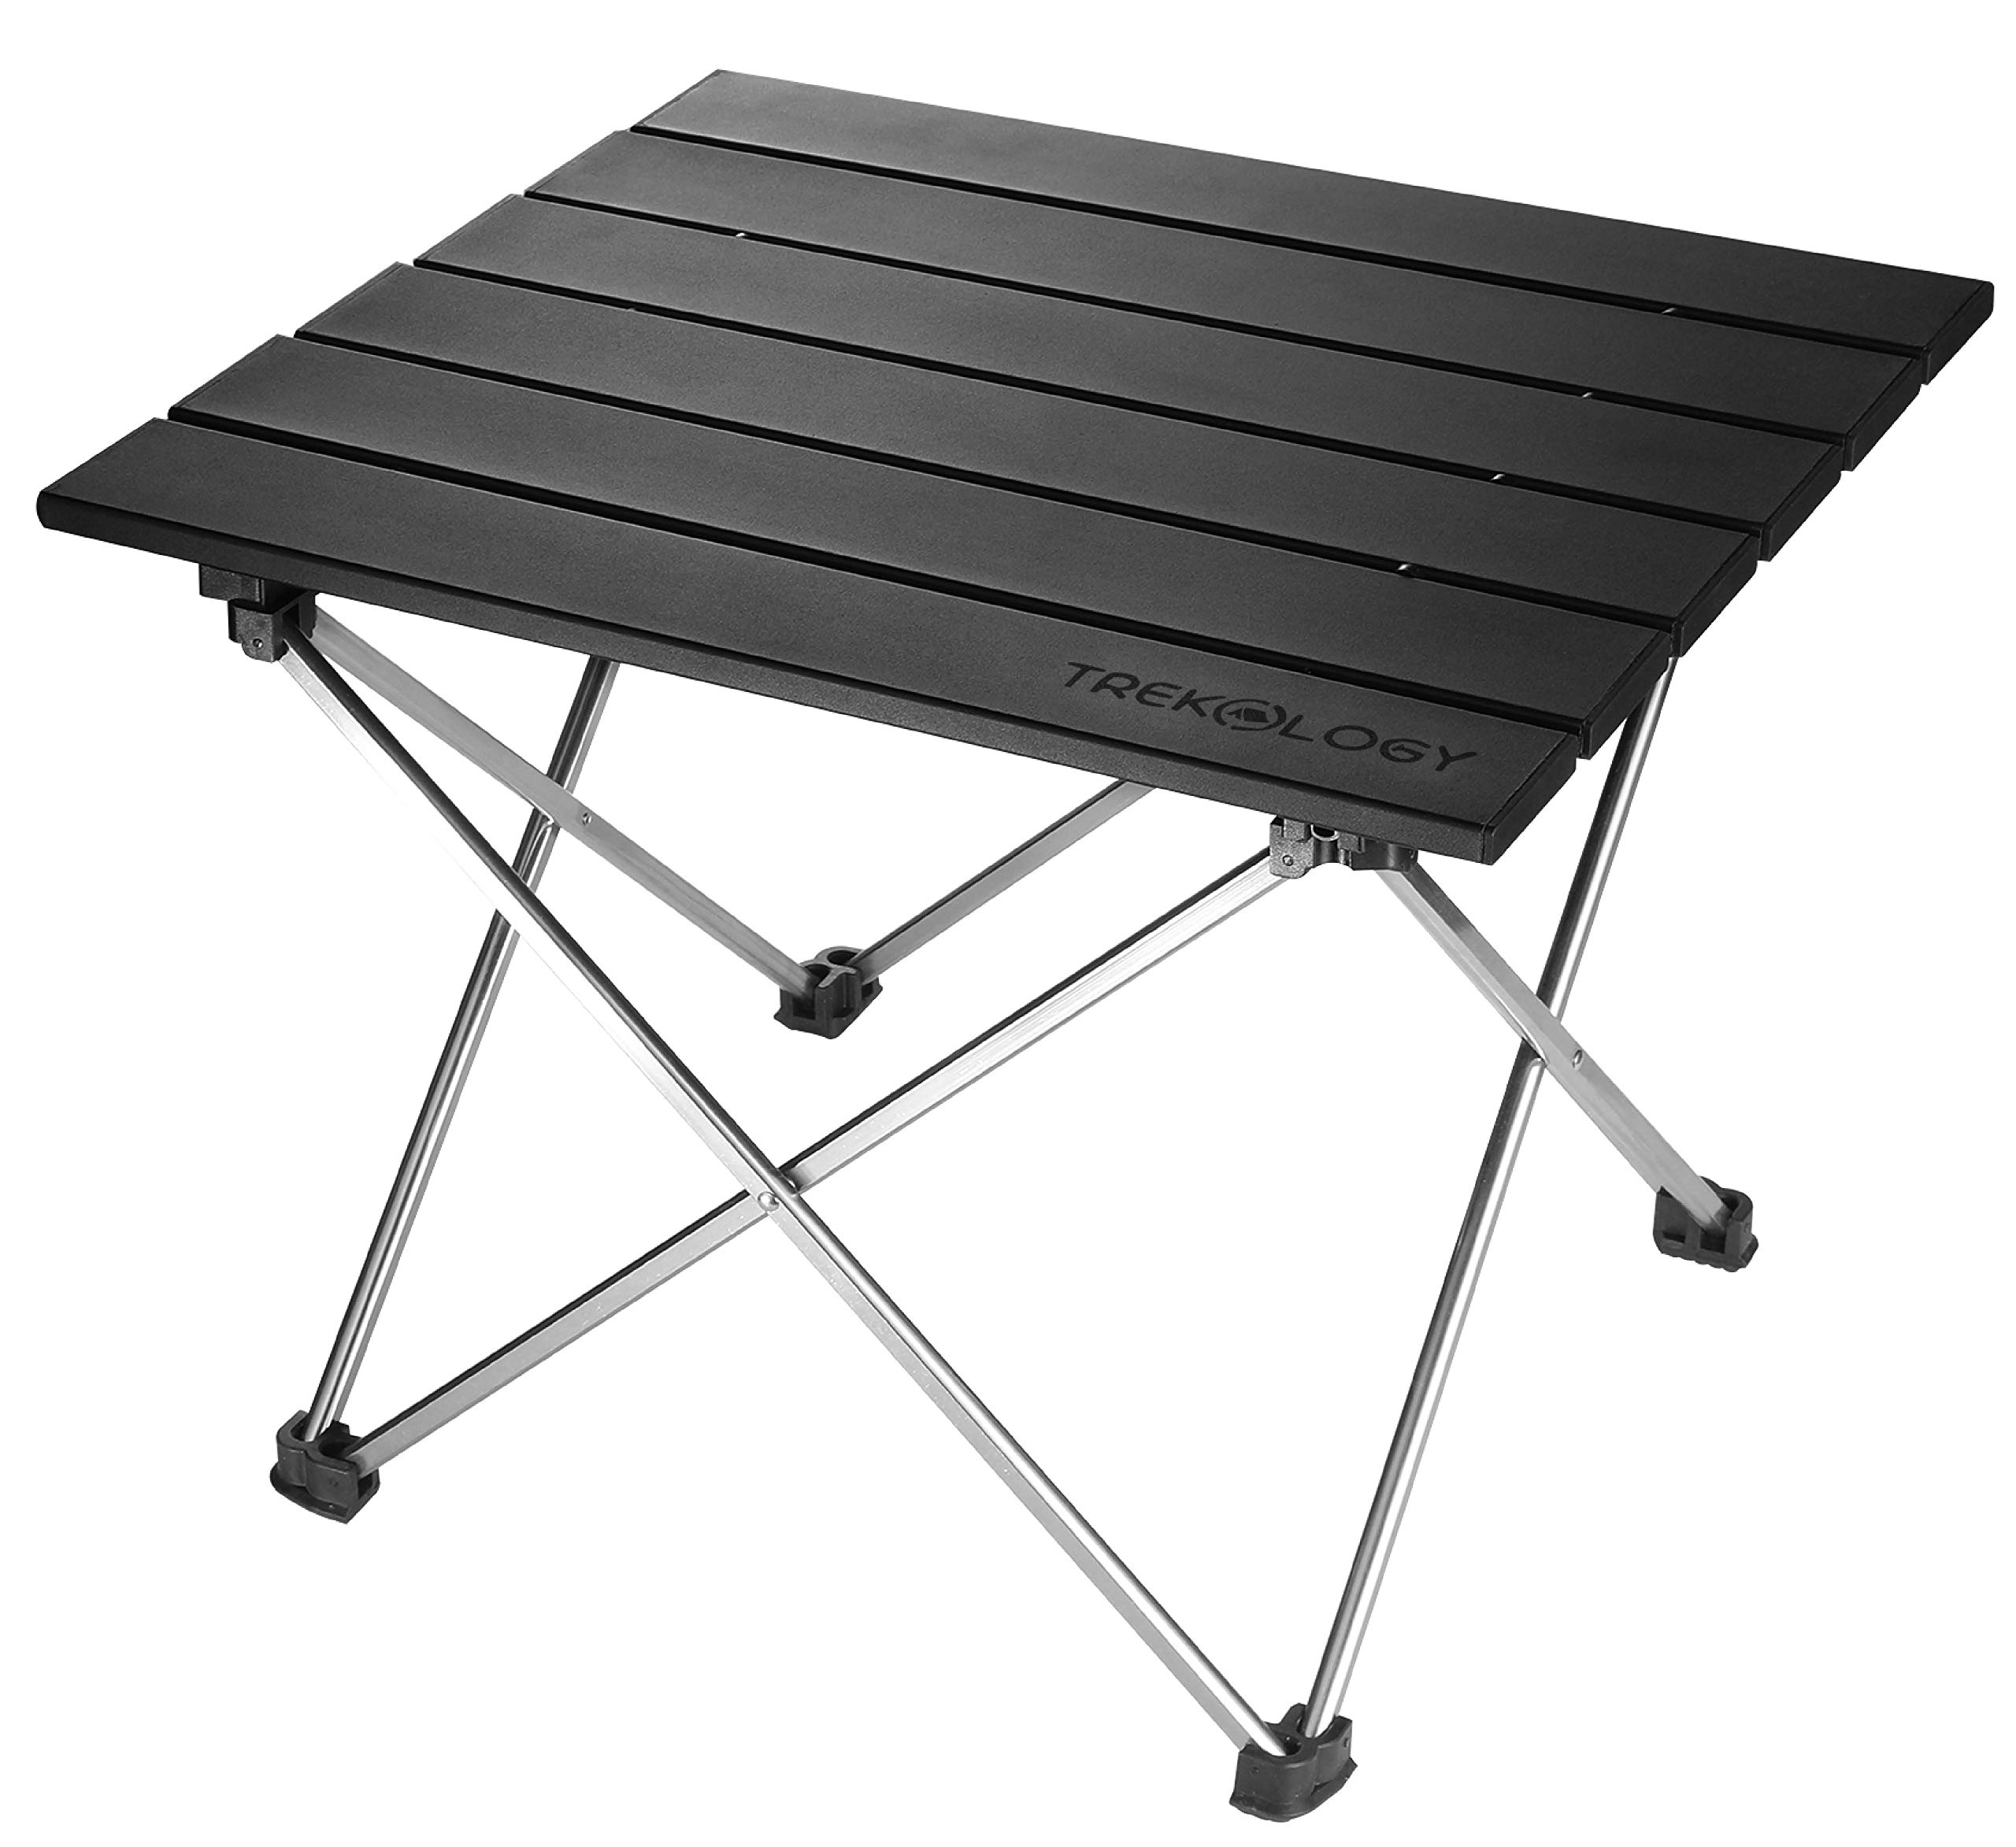 - Small Folding Camping Table Portable Beach Table - Collapsible